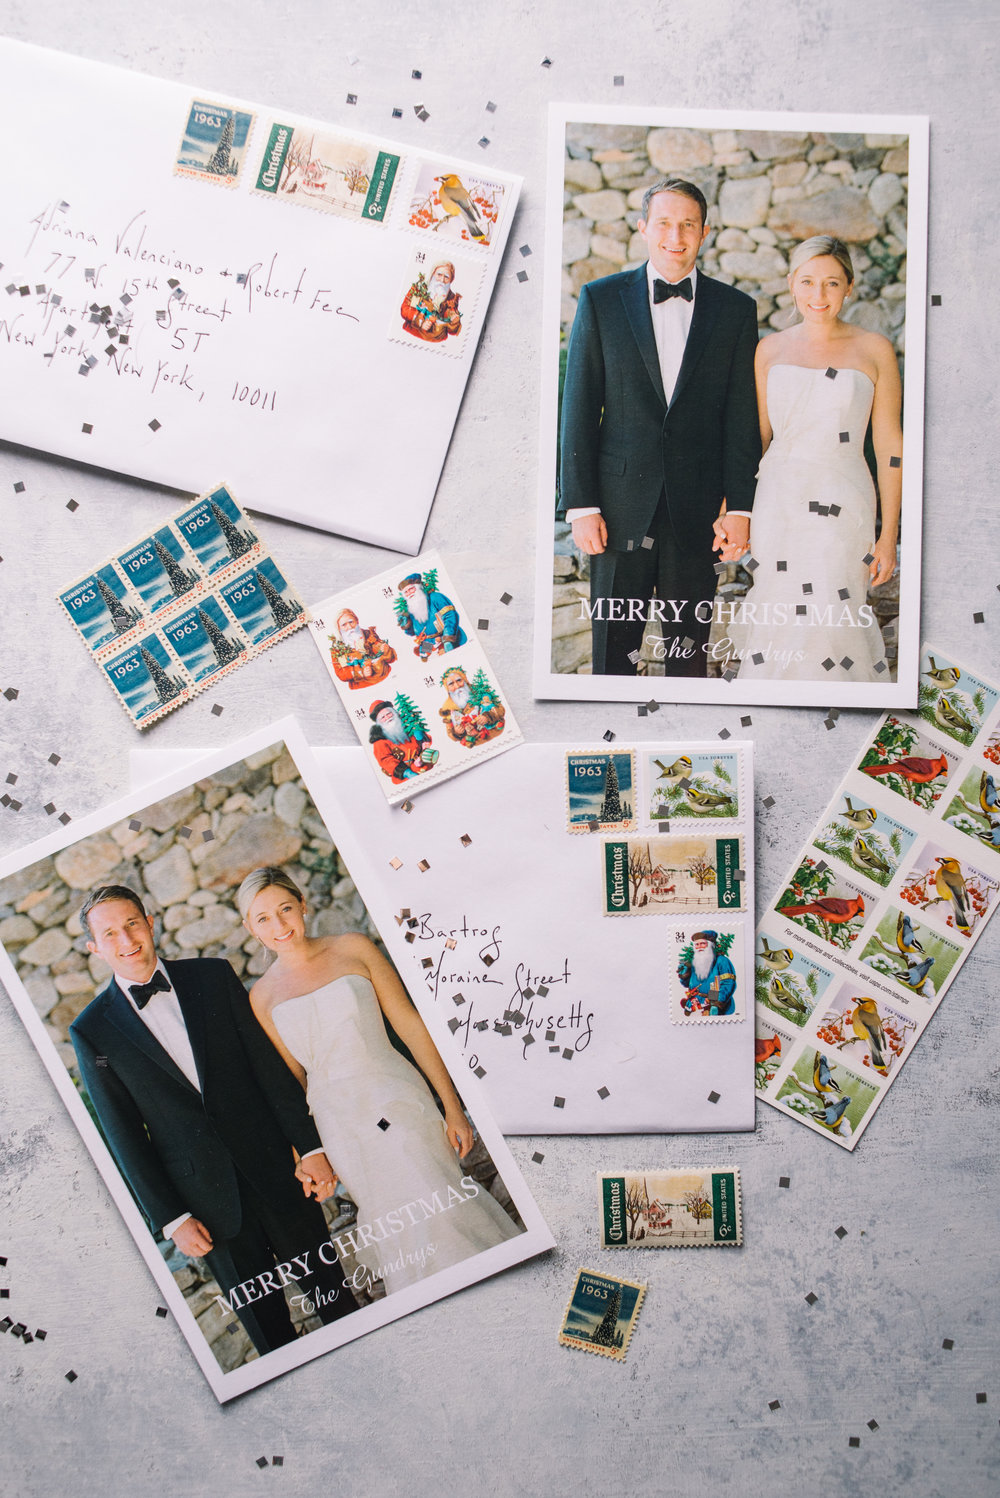 Christmas Cards with Vista Print